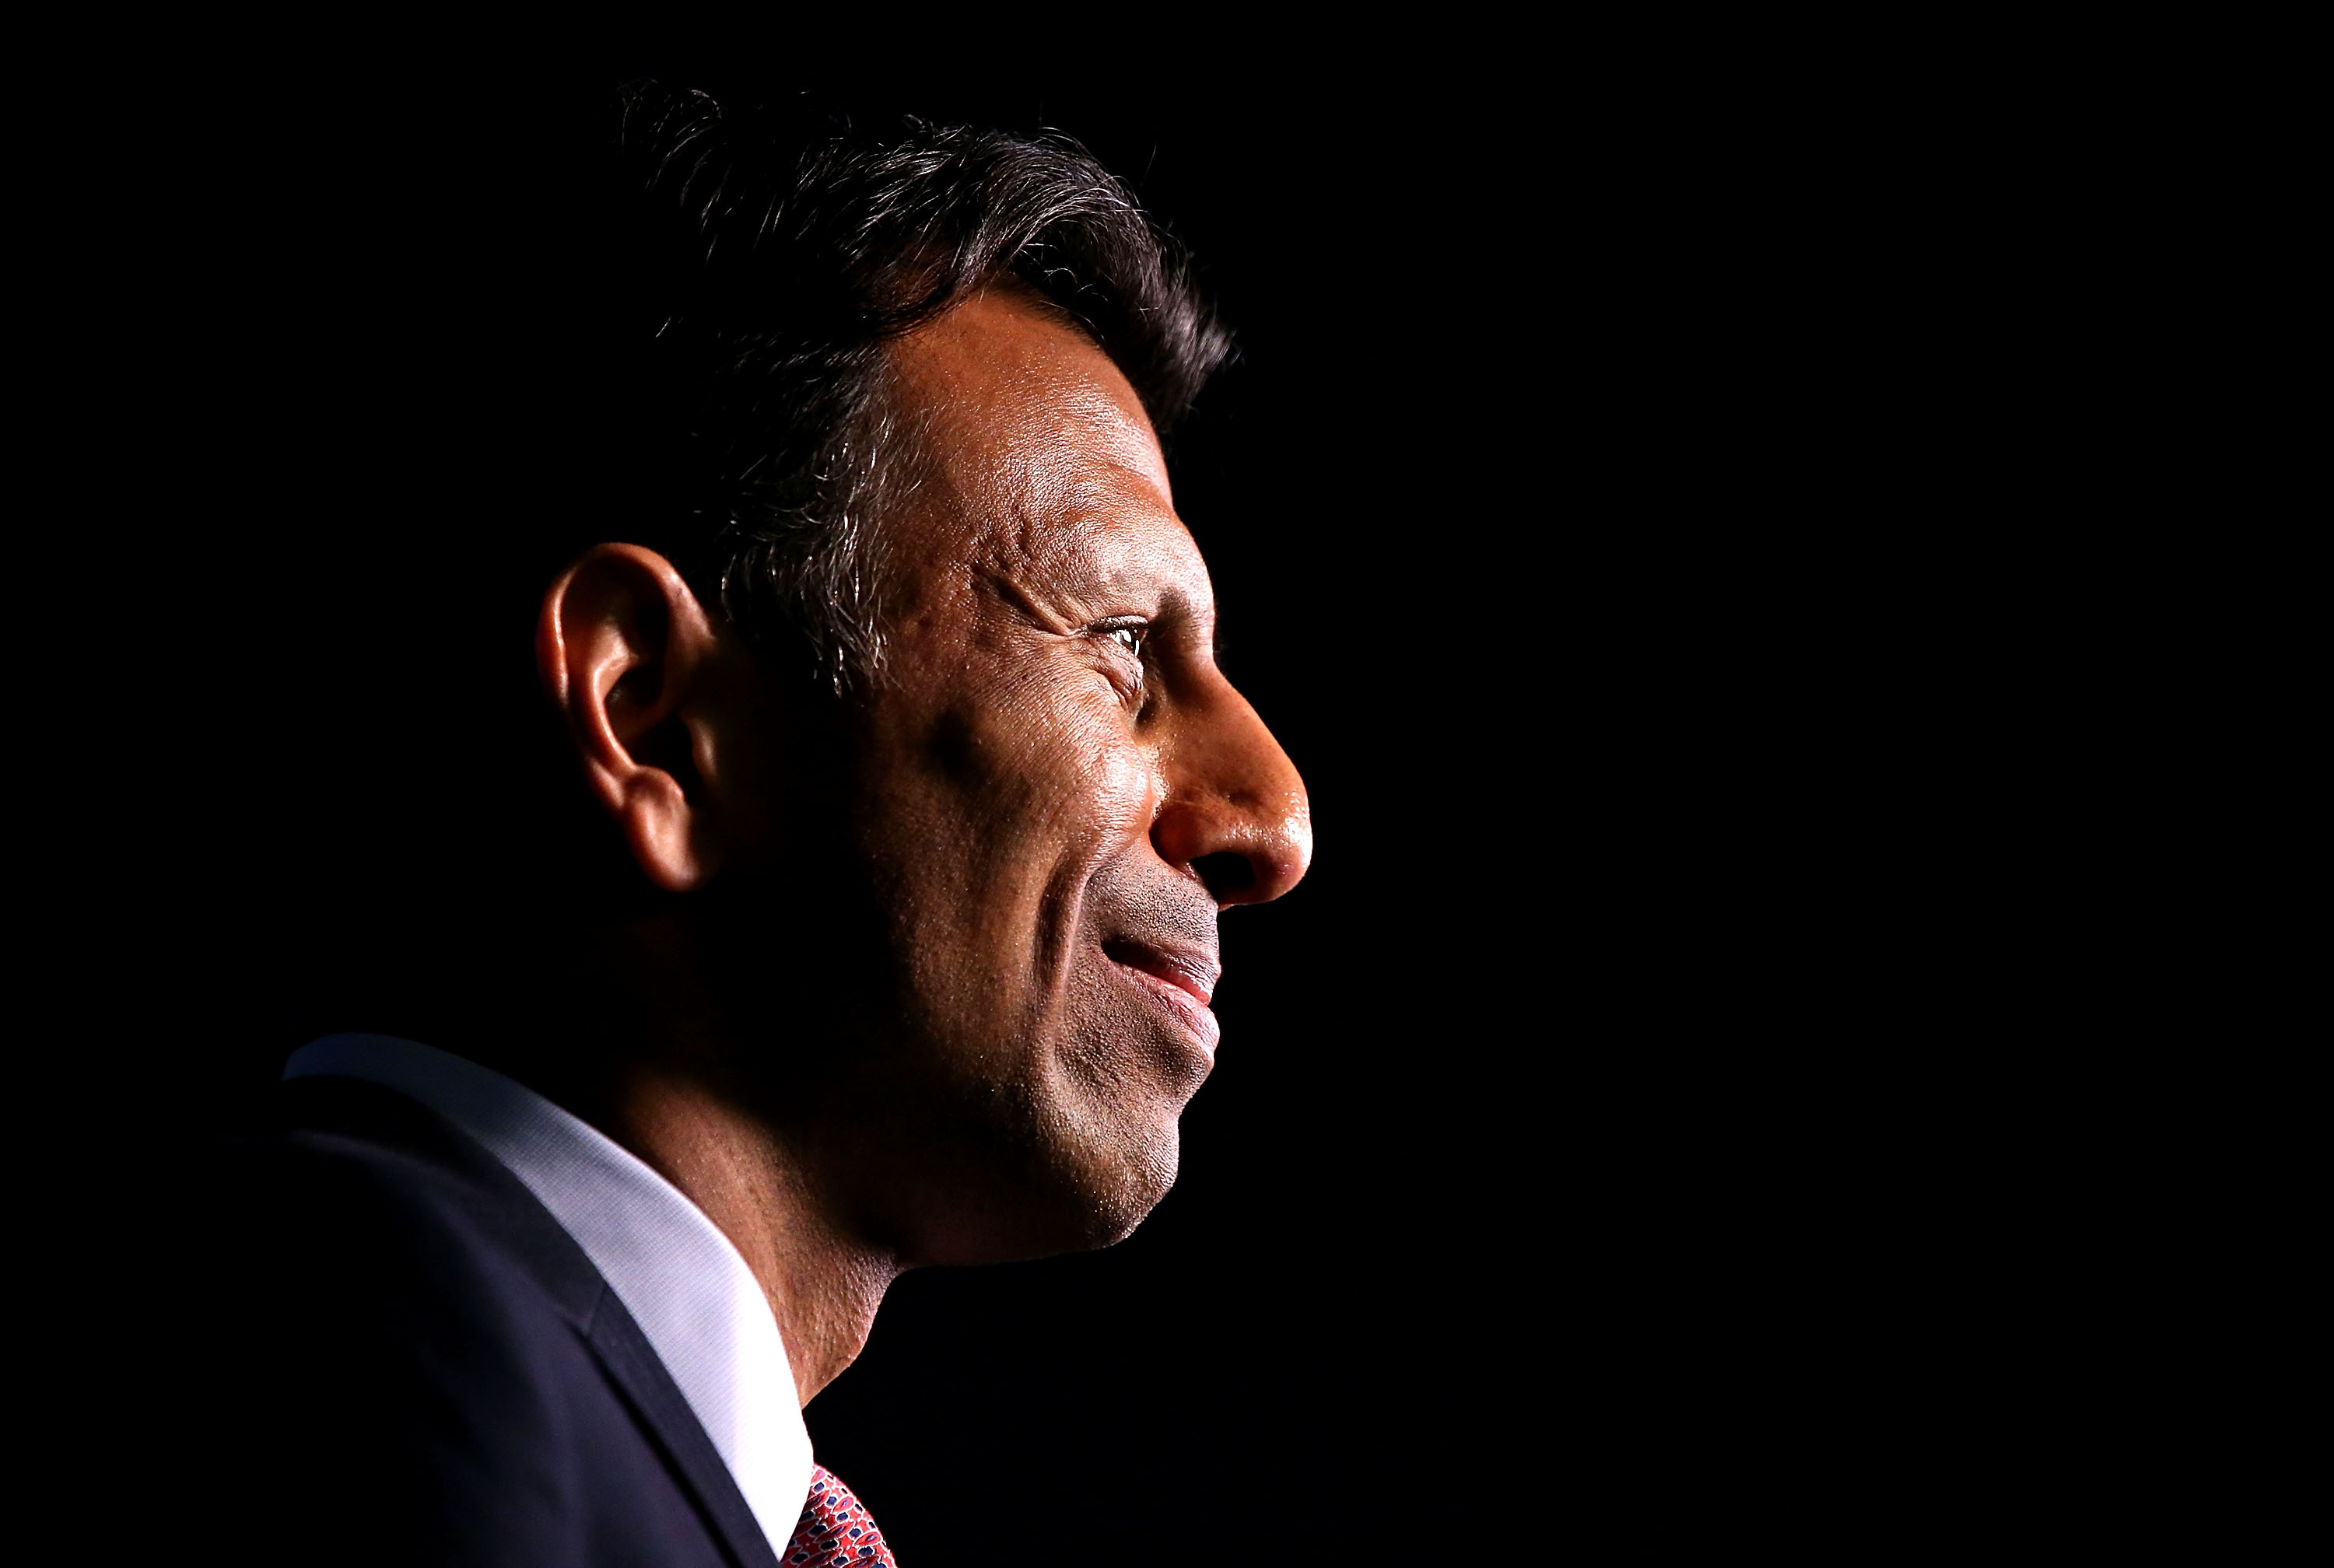 Louisiana Governor Bobby Jindal announces his candidacy for the 2016 Presidential nomination during a rally on June 24, 2015 in Kenner, Louisiana.